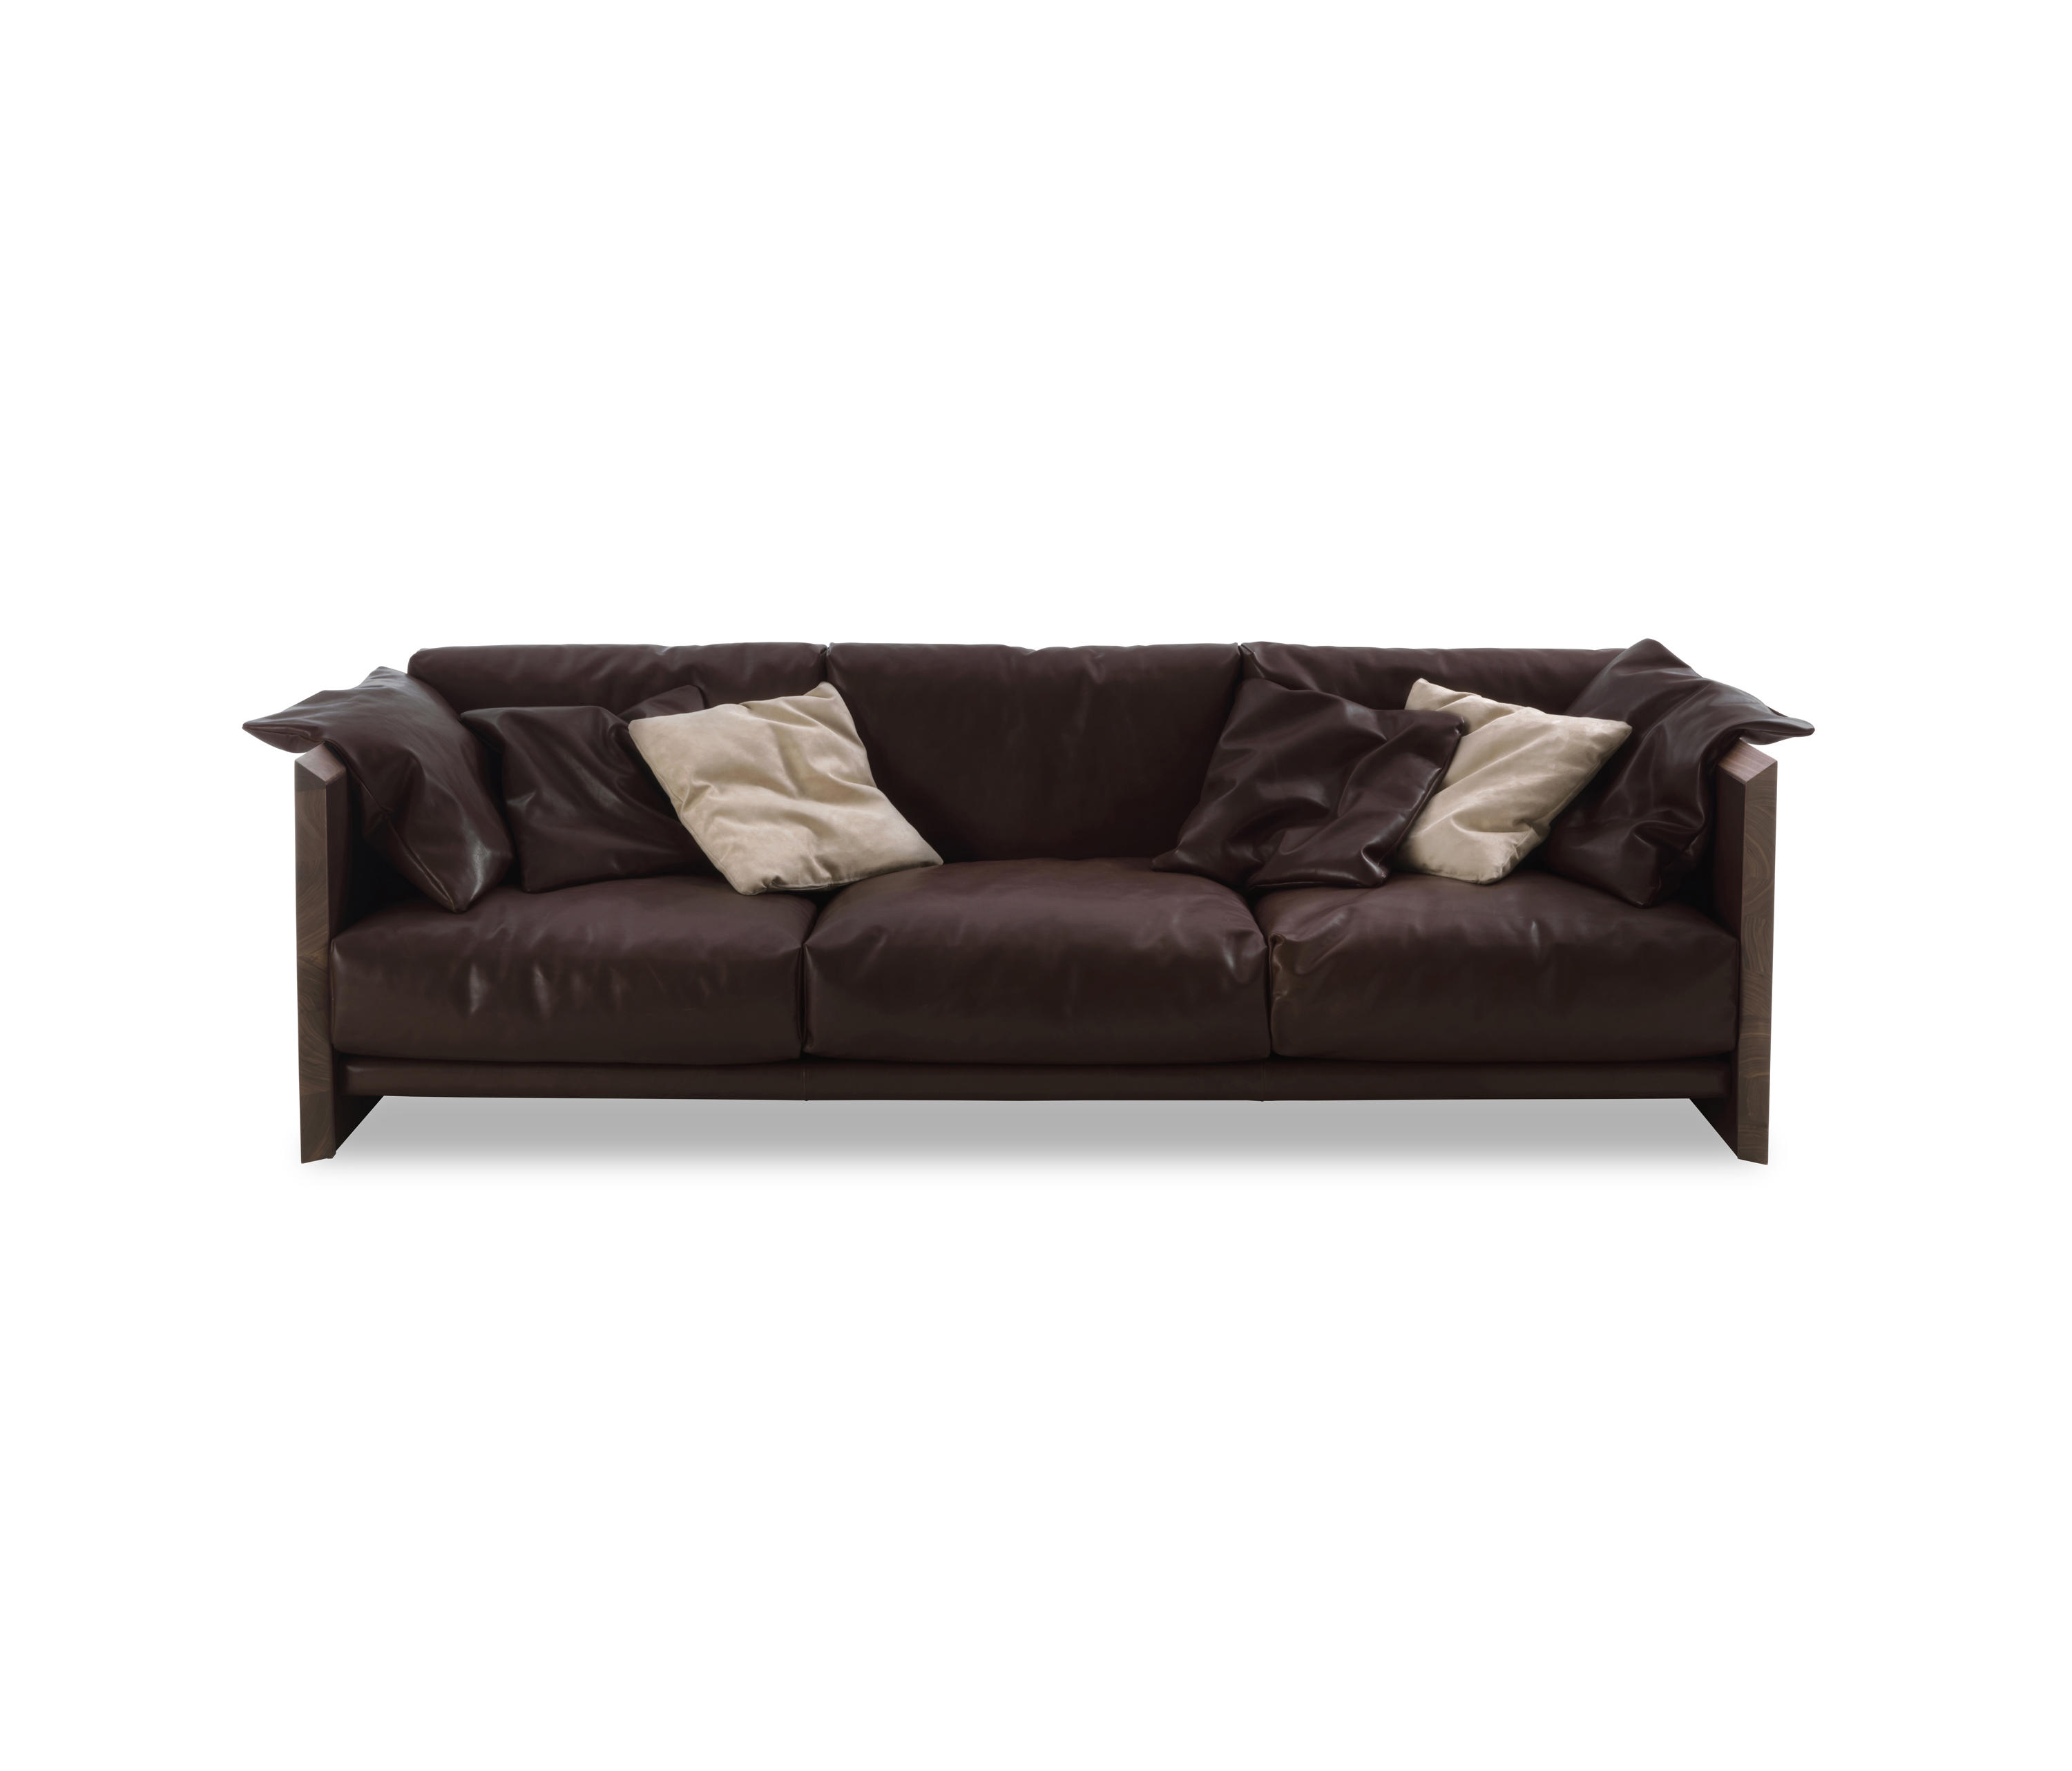 SOFT WOOD - Sofas from Riva 1920 | Architonic